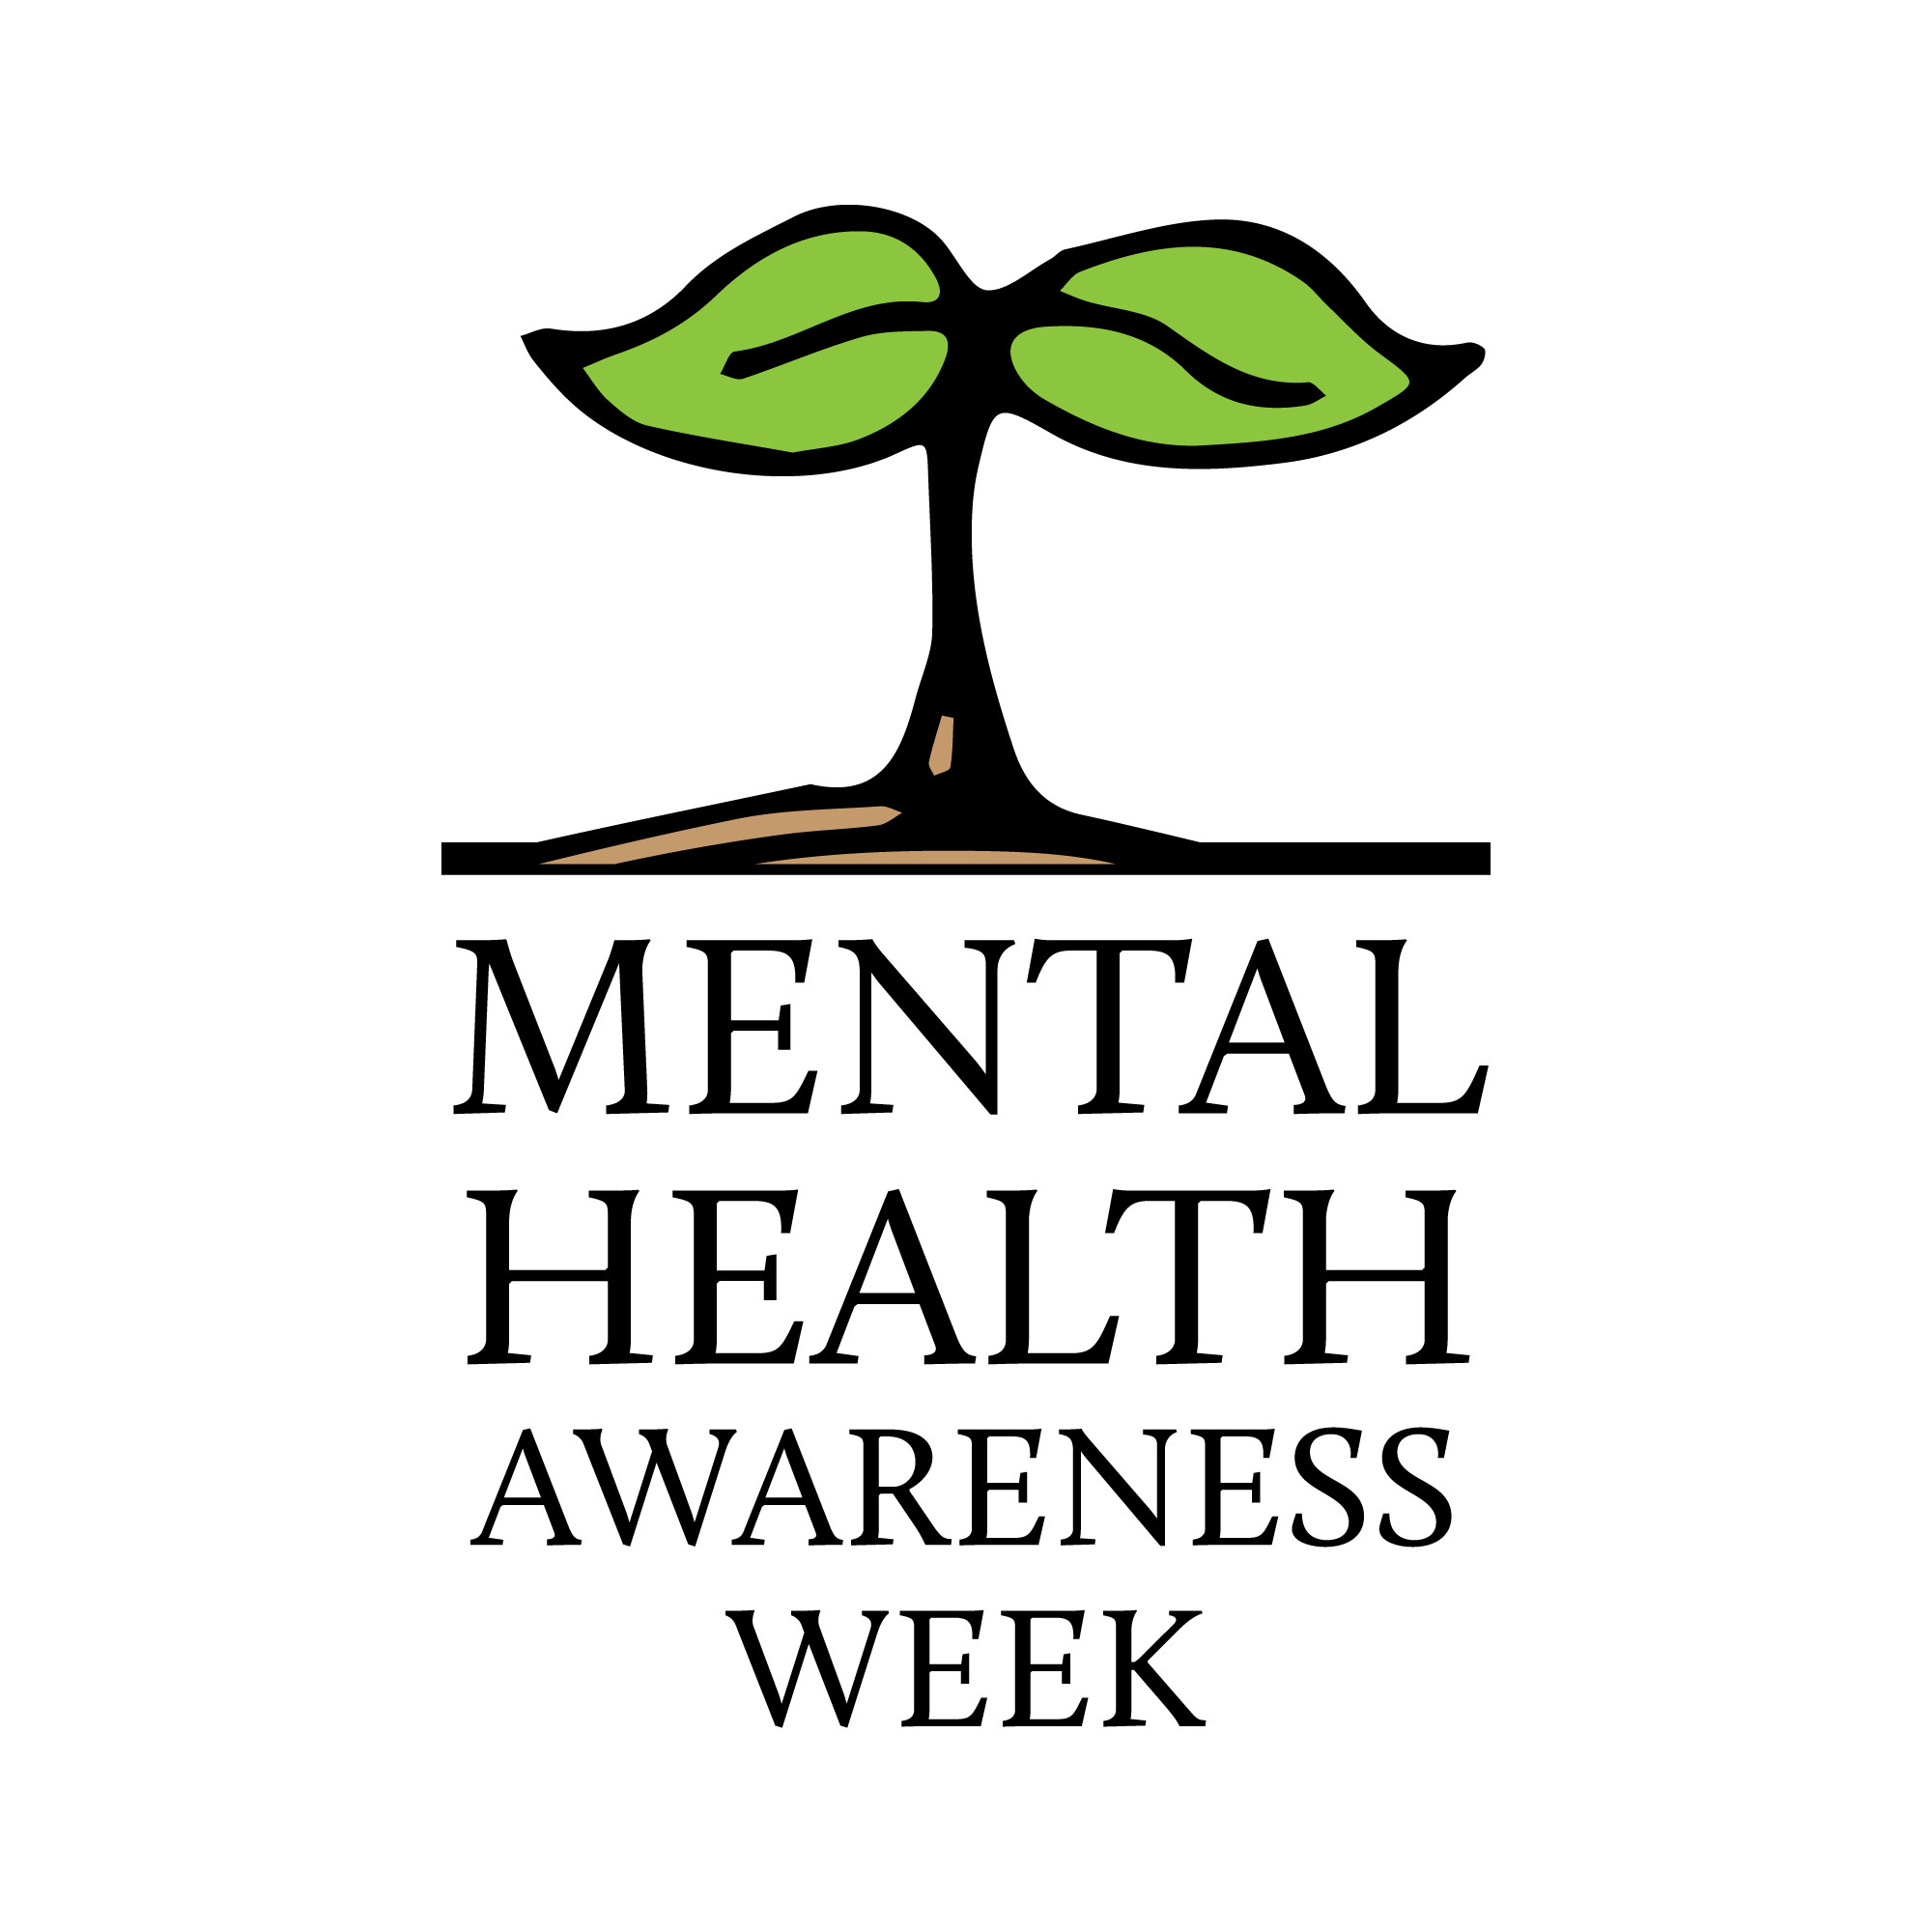 Mental Health Awareness Week: The King's University